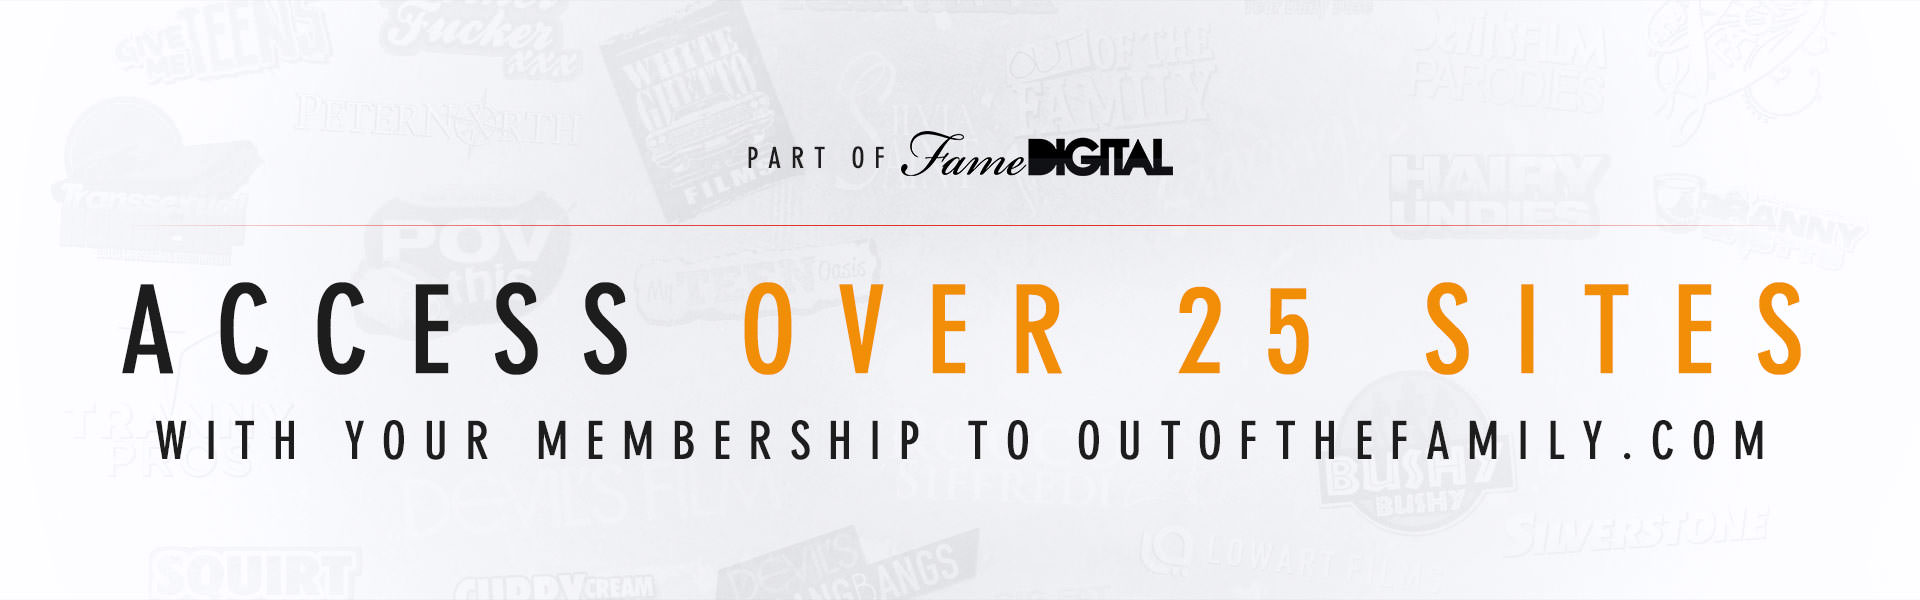 Part of FameDigital access over 25 sites with your membership to OutOfTheFamily.com